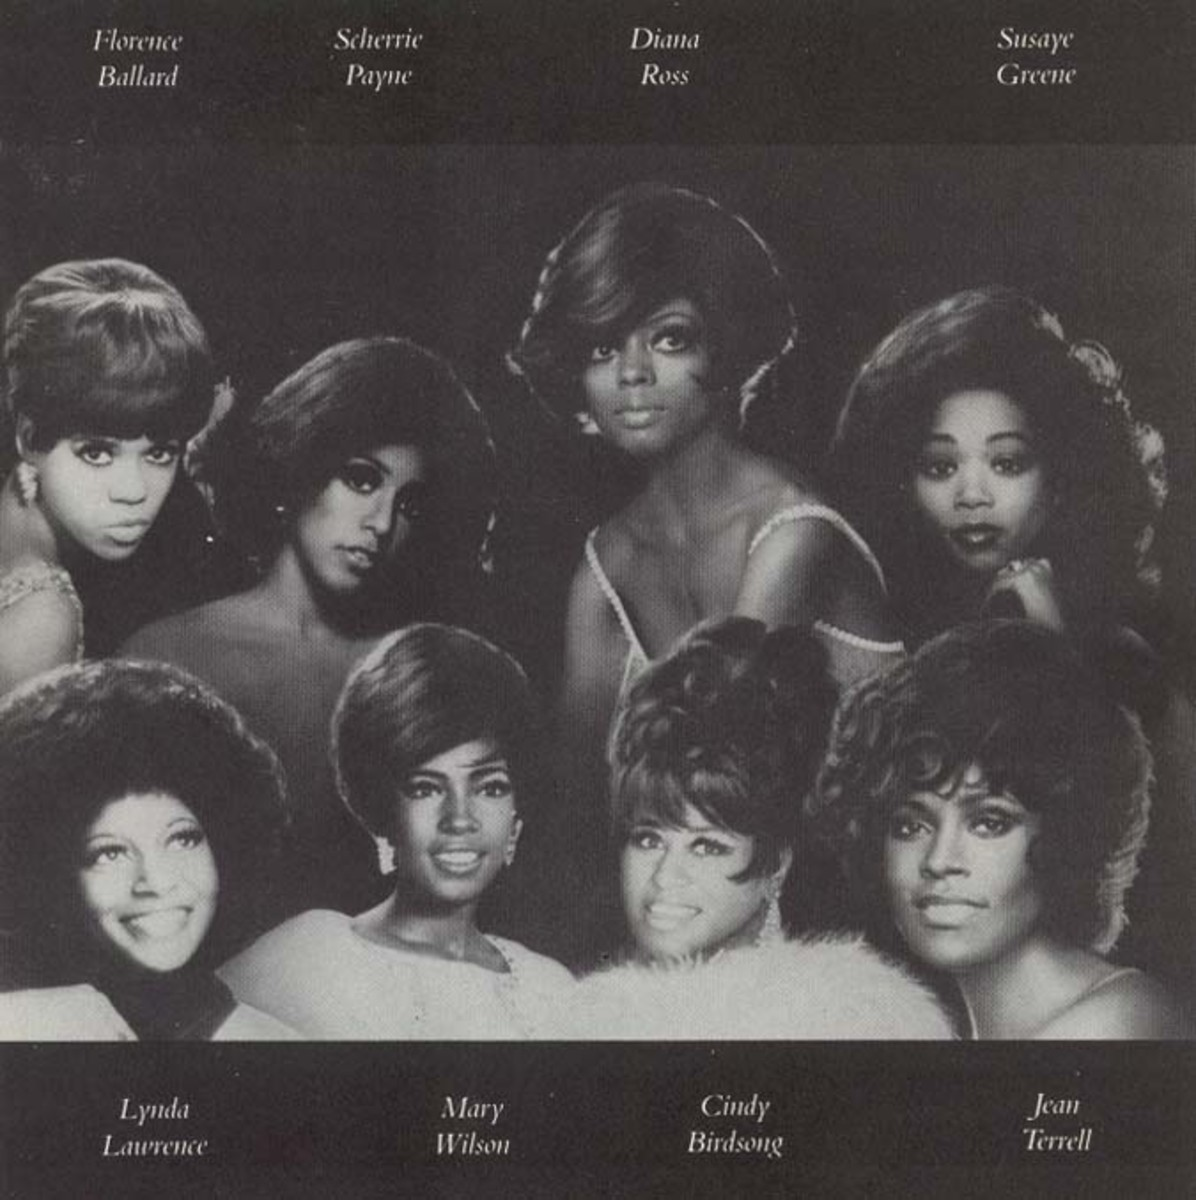 Rare photo of all The Supremes